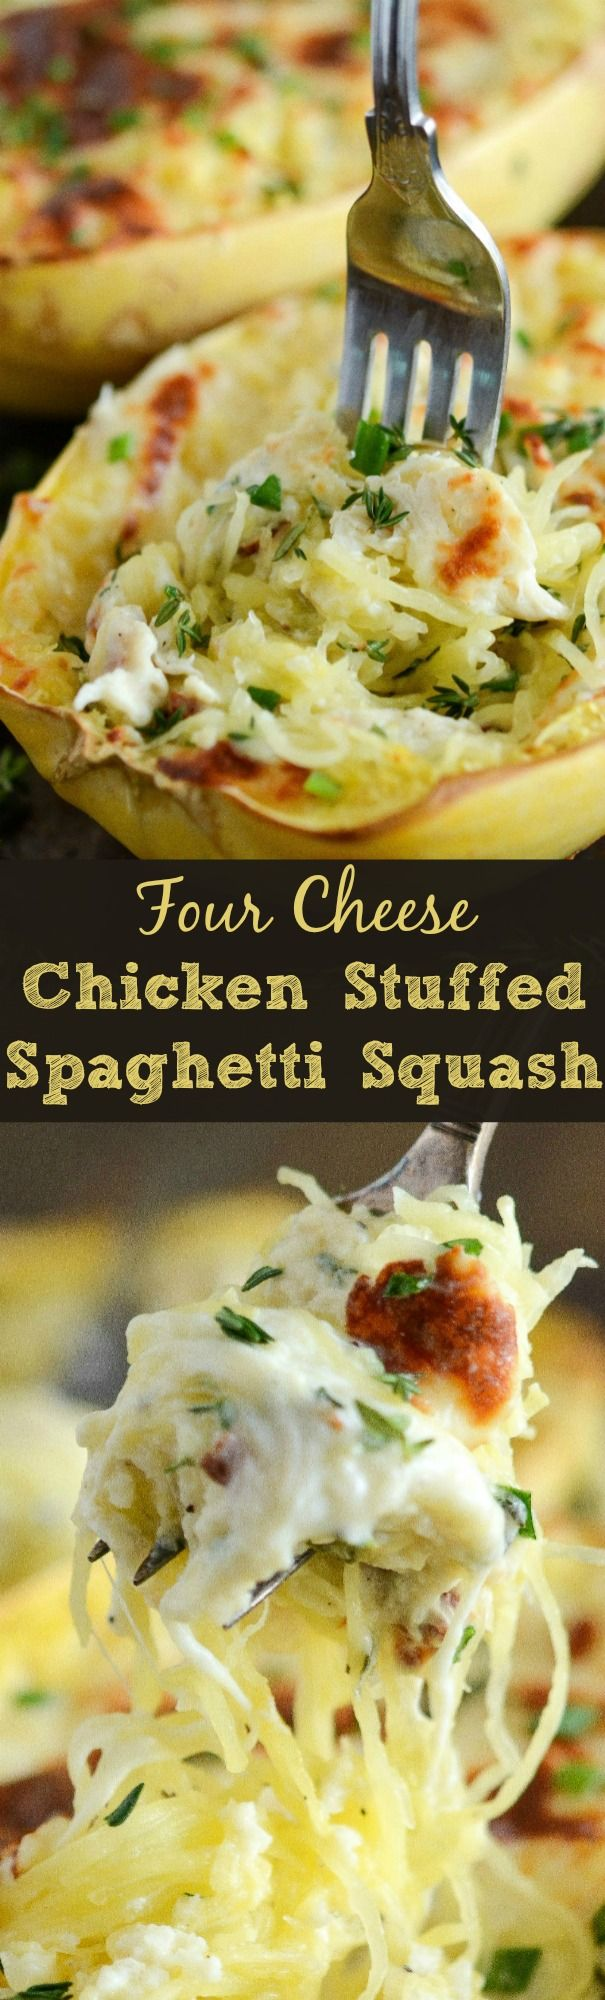 17 Best Images About Recipe Ideas On Pinterest Homemade